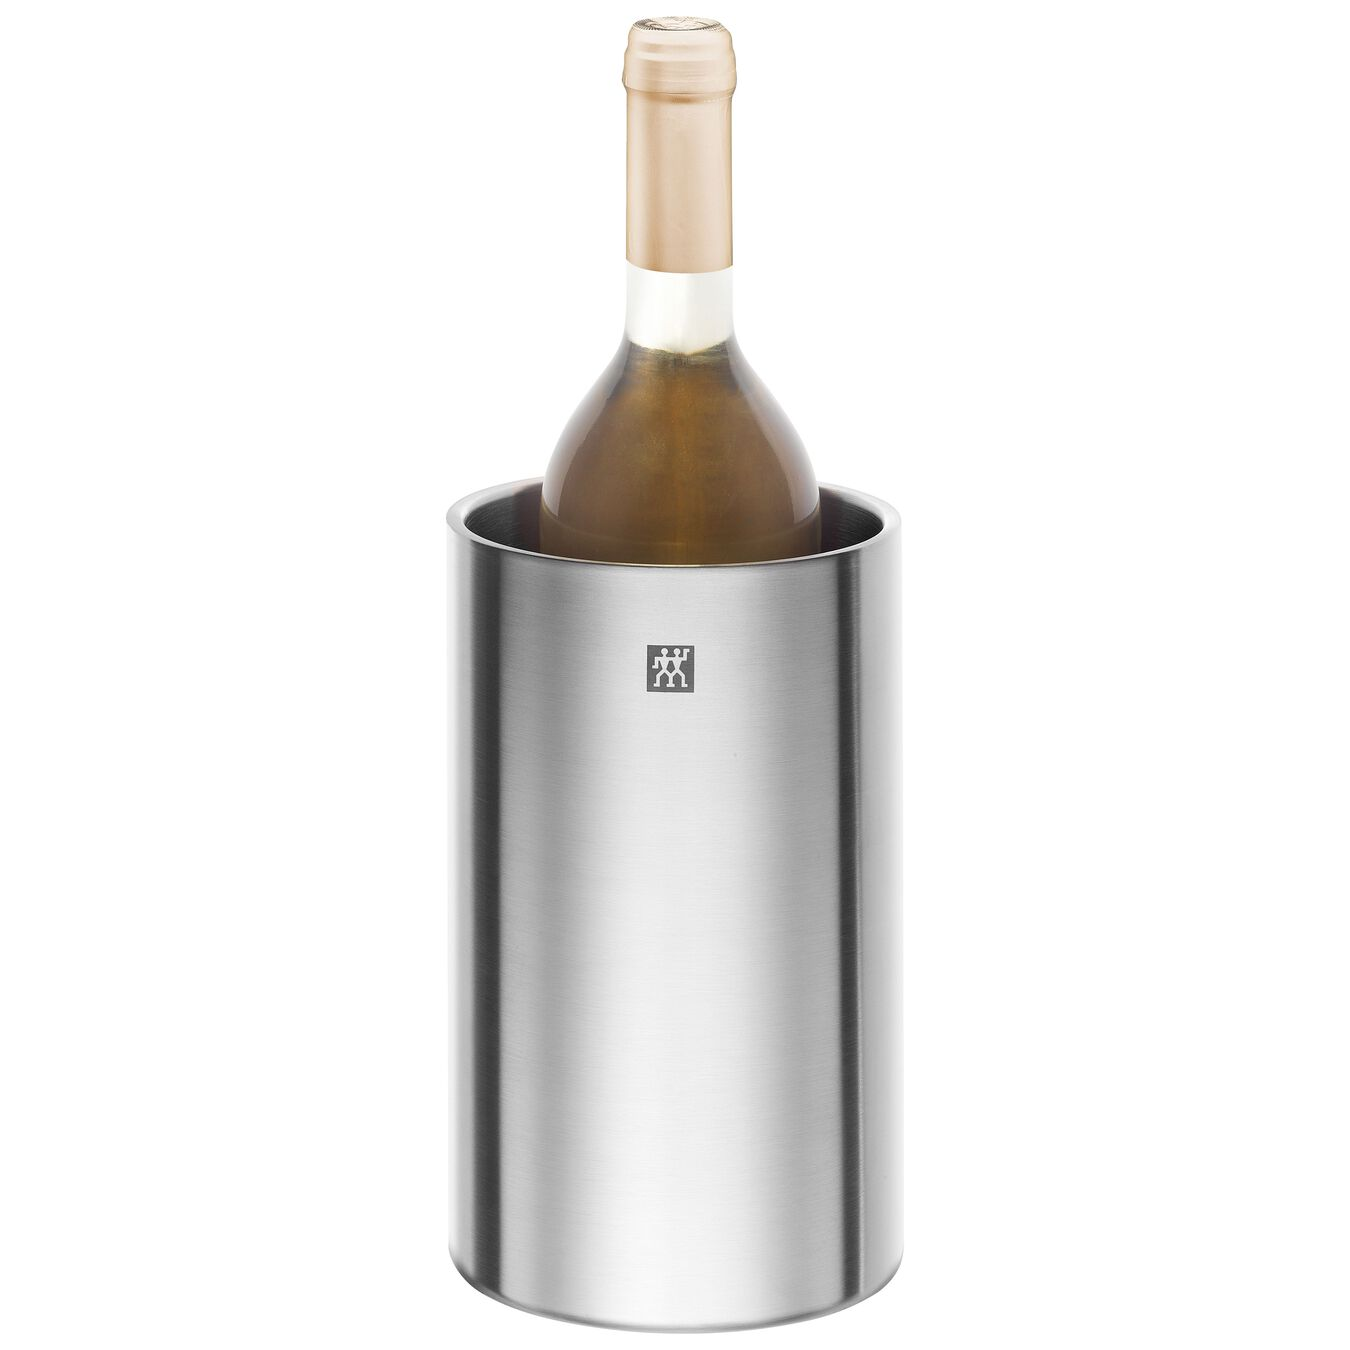 Stainless steel Wine cooler,,large 2